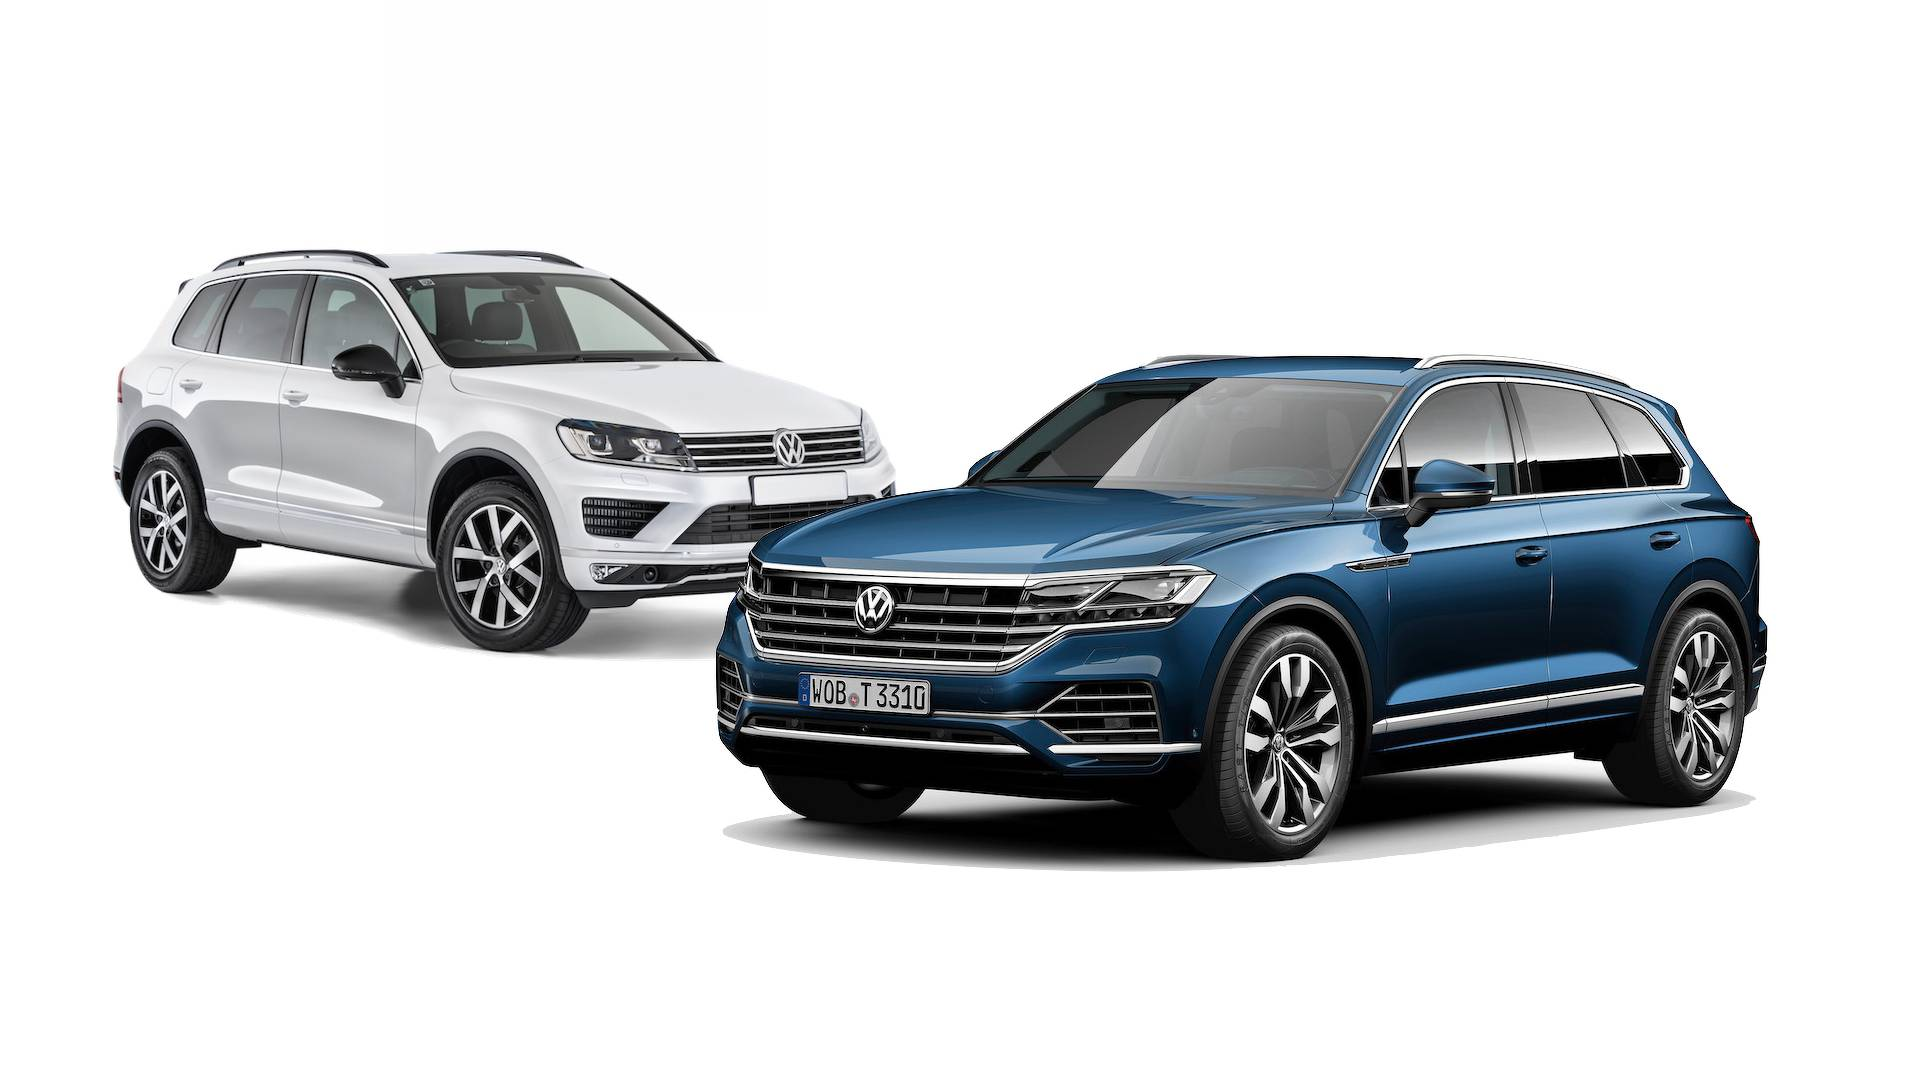 2019 Vw Touareg See The Changes Side